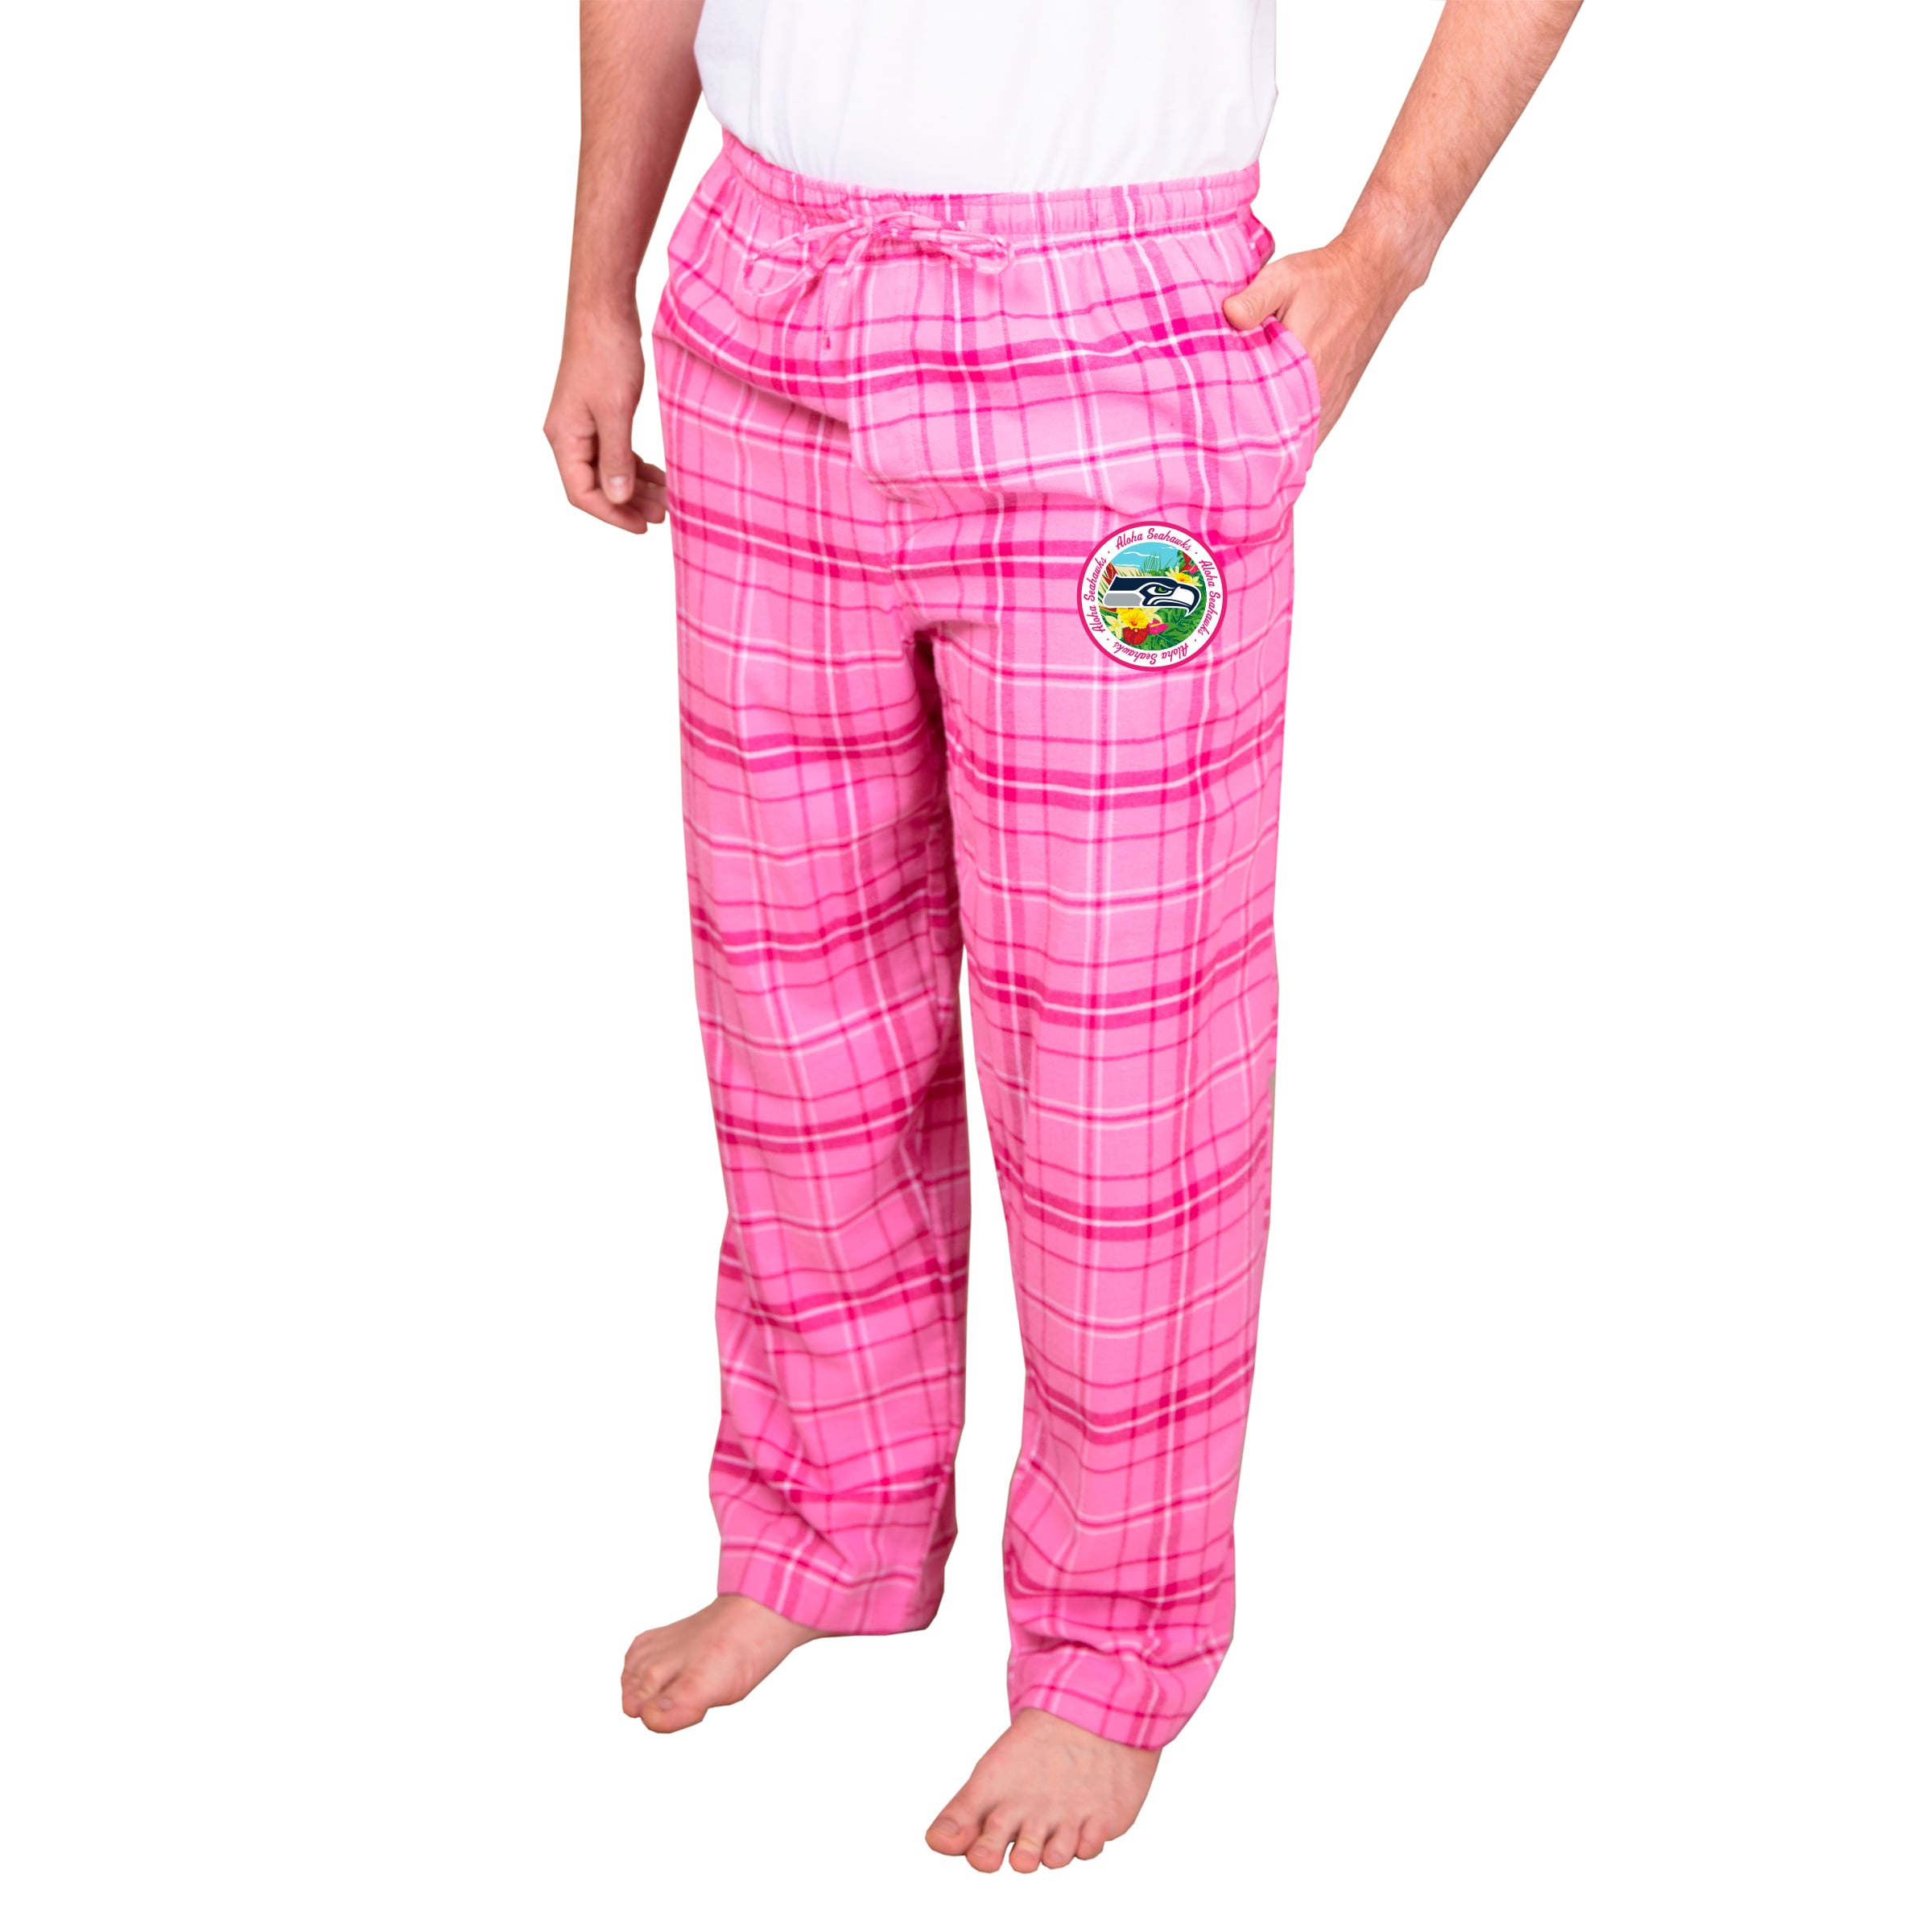 Seattle Seahawks Concepts Sport Ultimate Pants - Pink